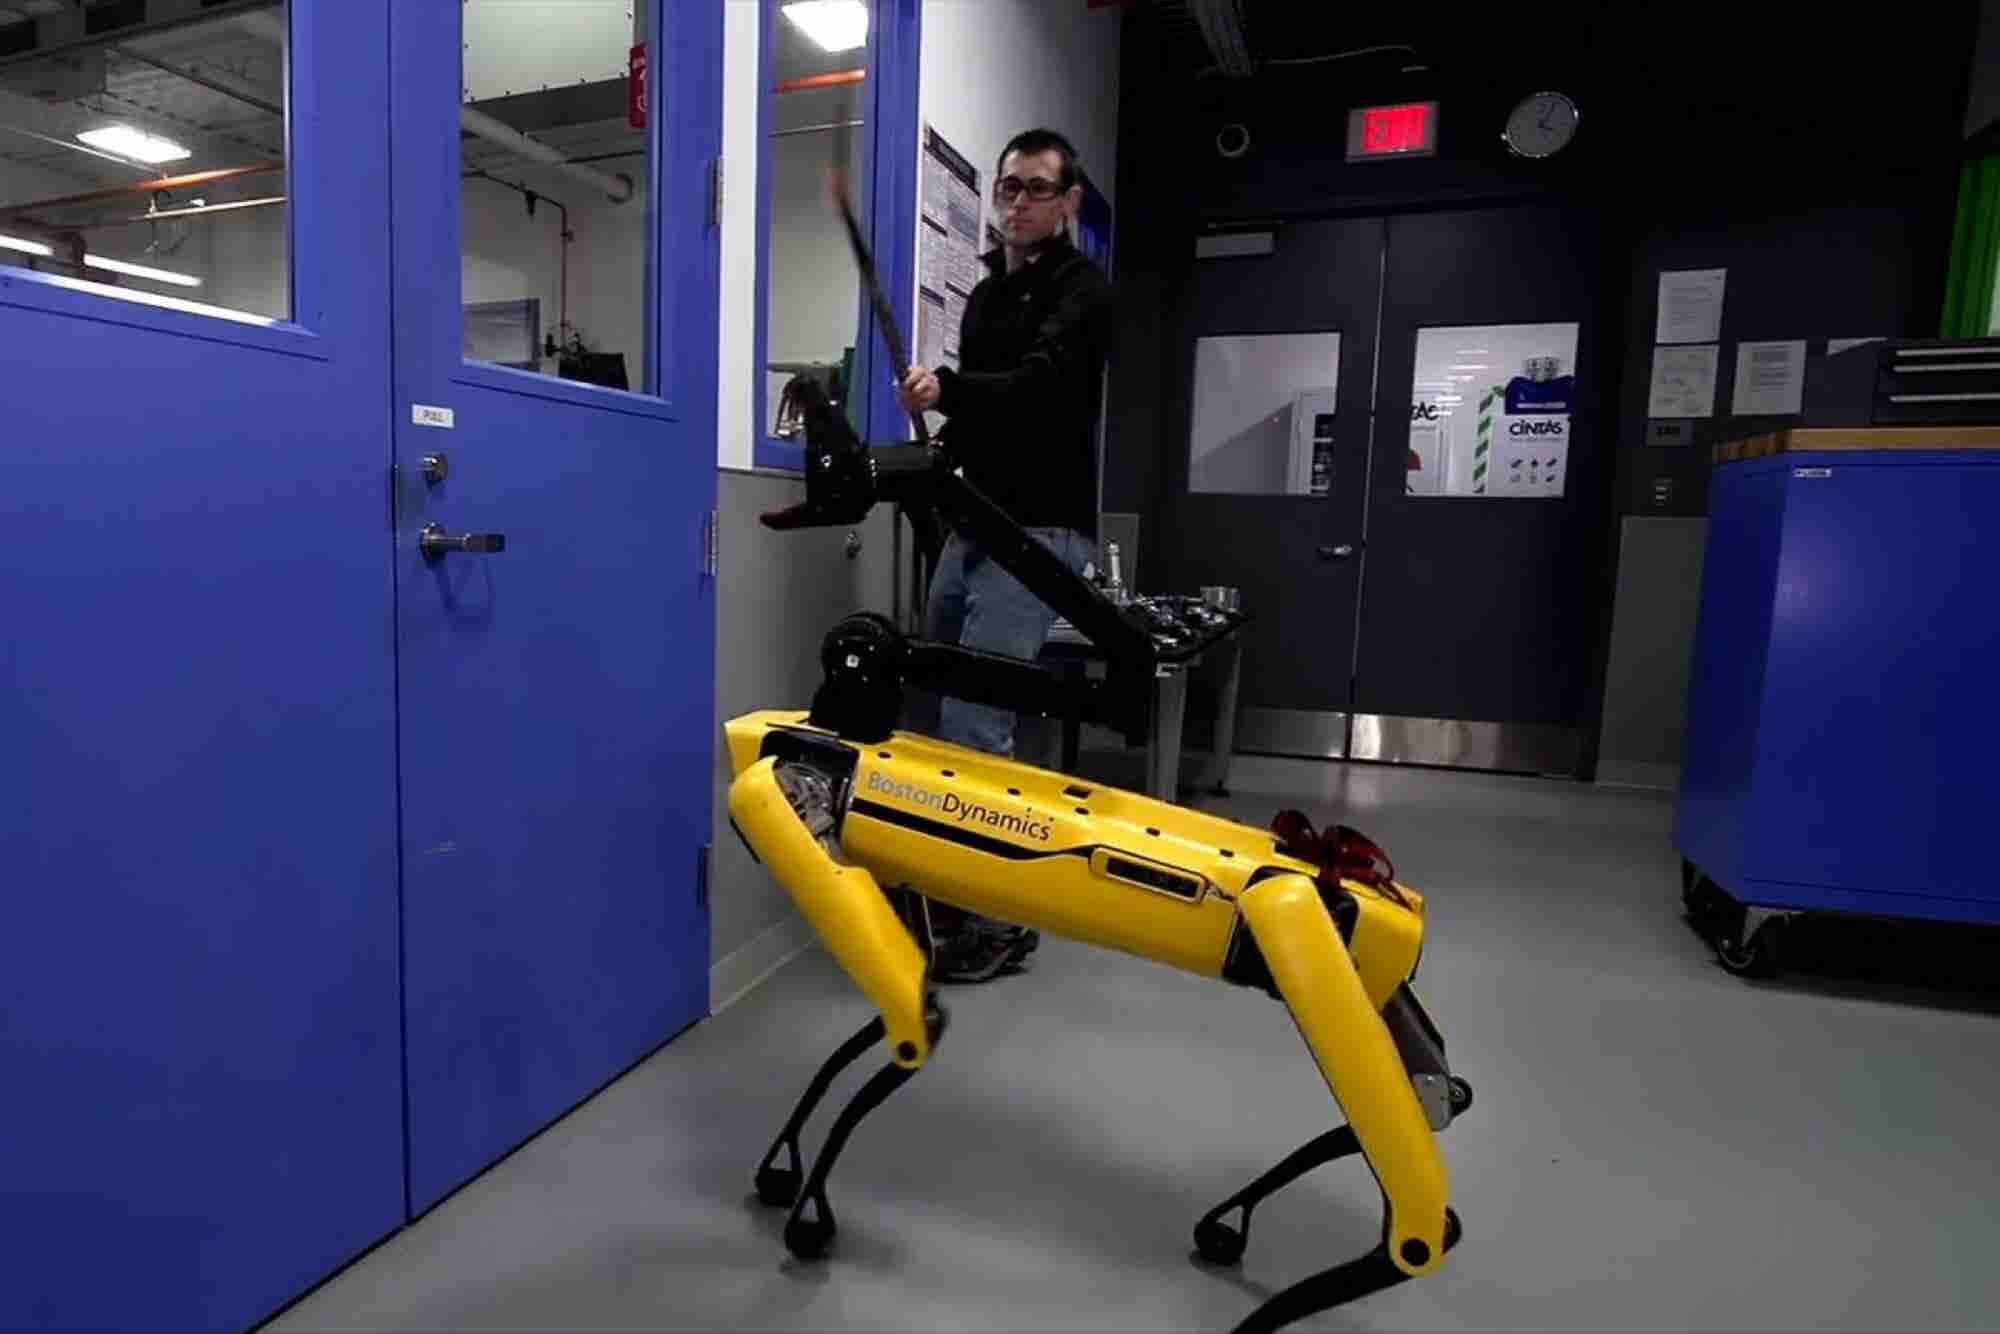 Watch This Robot Endure Abuse While Opening a Door